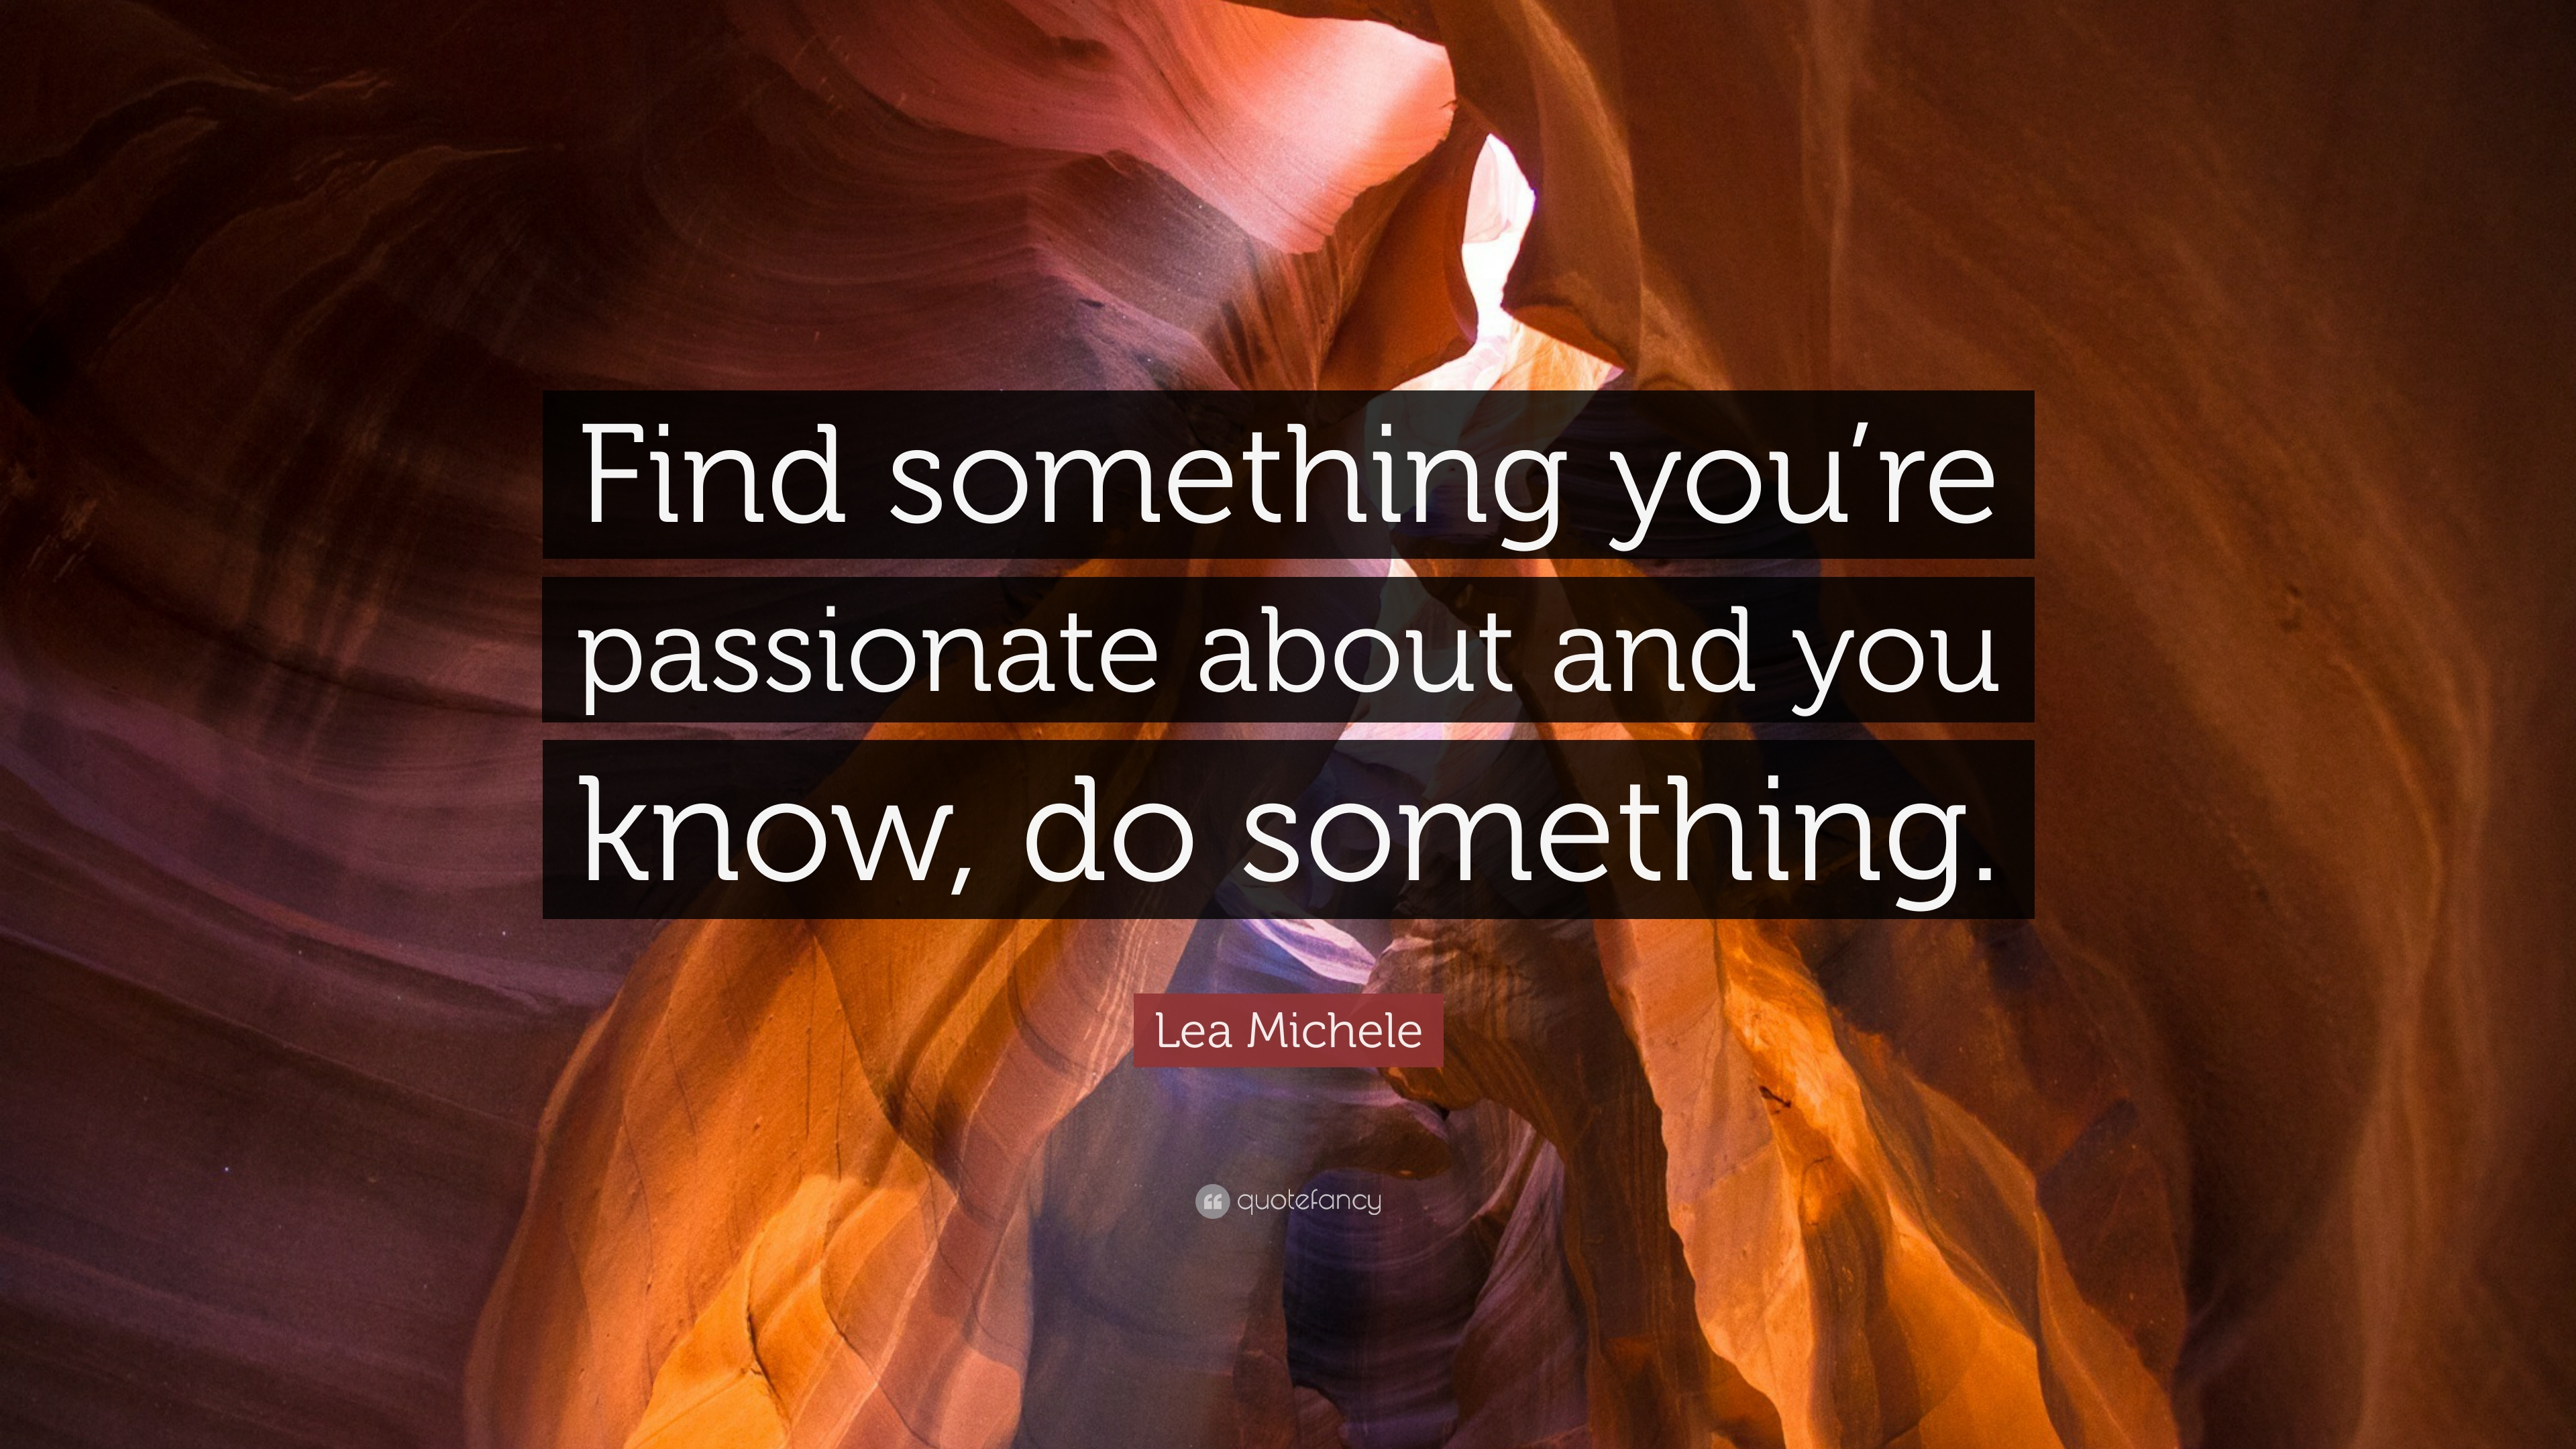 lea michele quote something you re passionate about and you lea michele quote something you re passionate about and you know